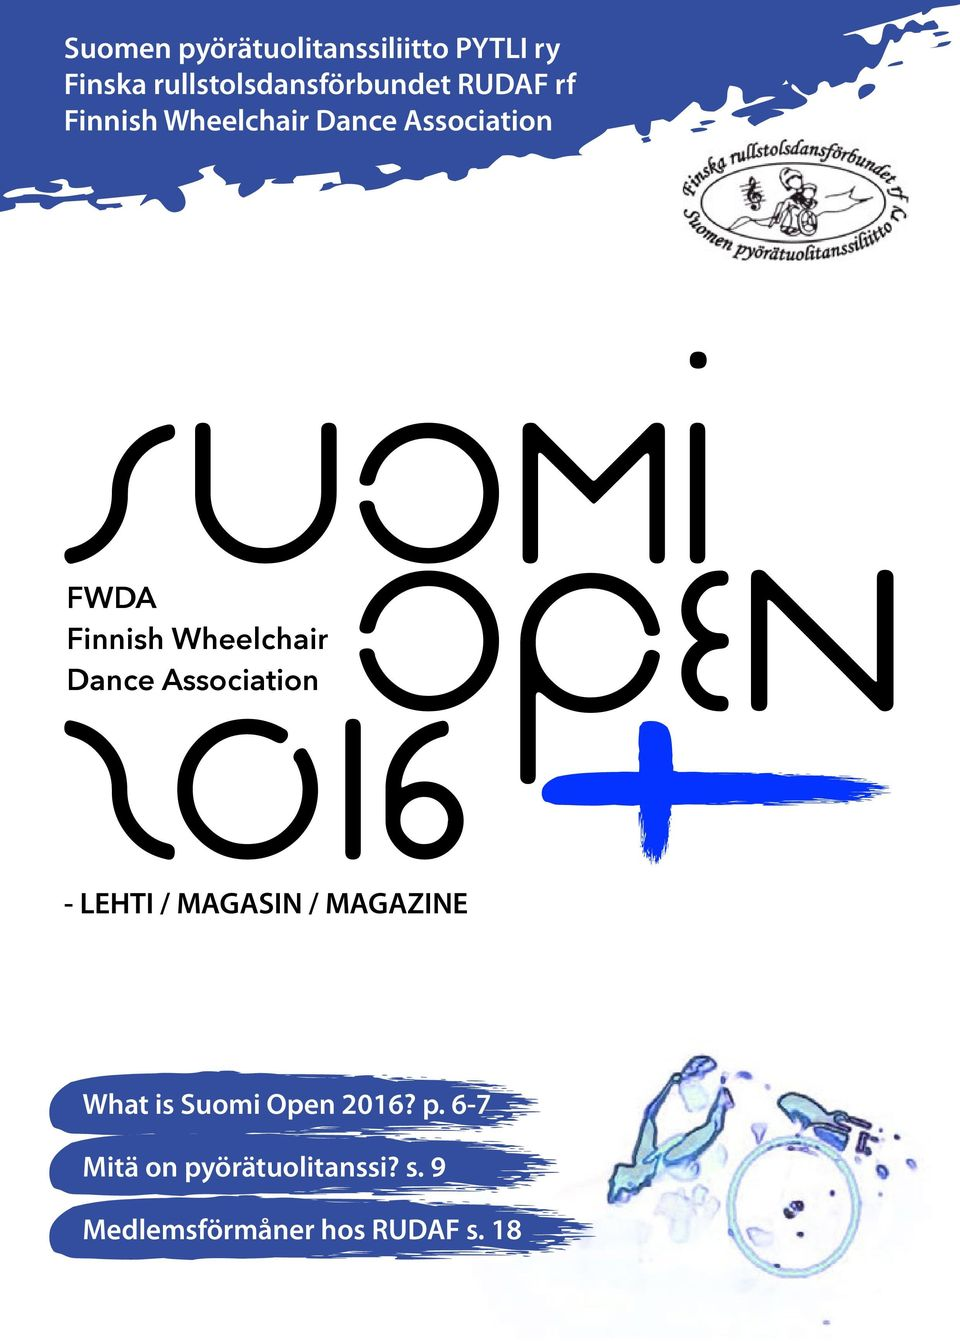 Finnish Wheelchair Dance Association - LEHTI / MAGASIN / MAGAZINE What is